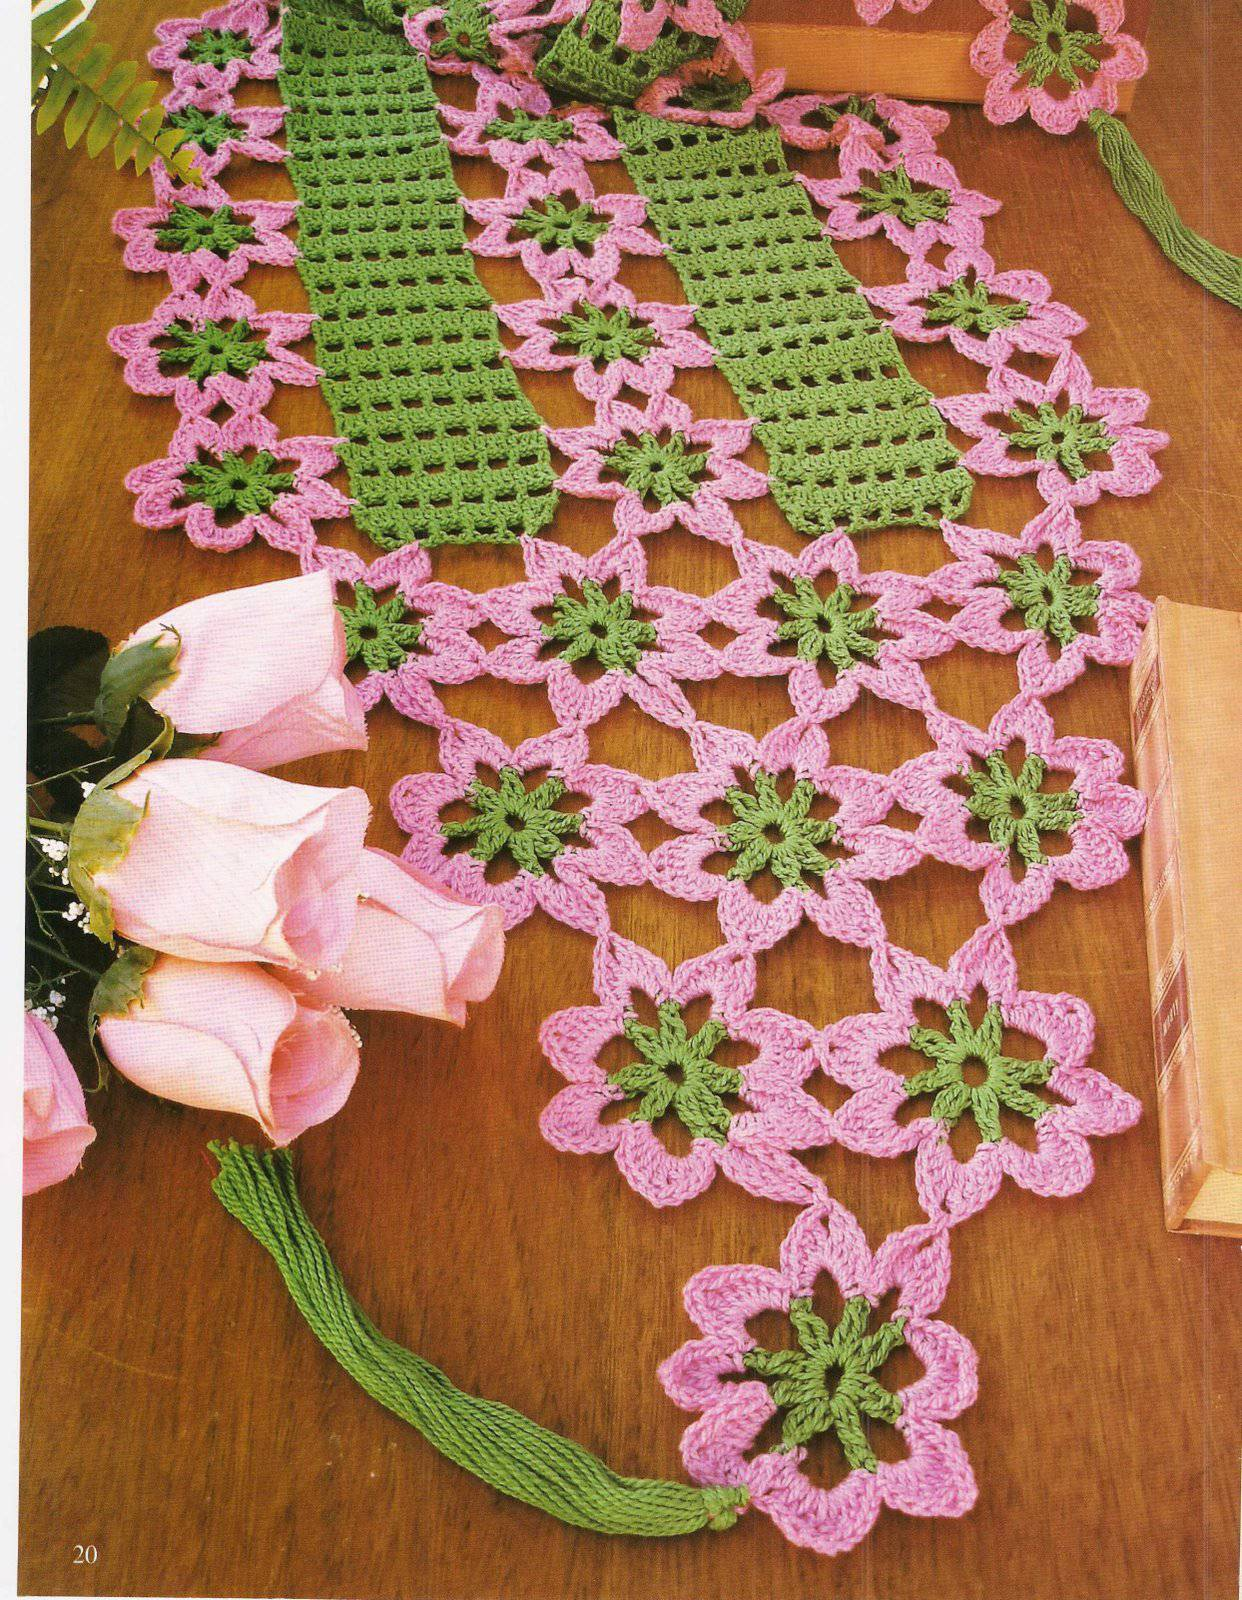 Green and pink crochet table runner